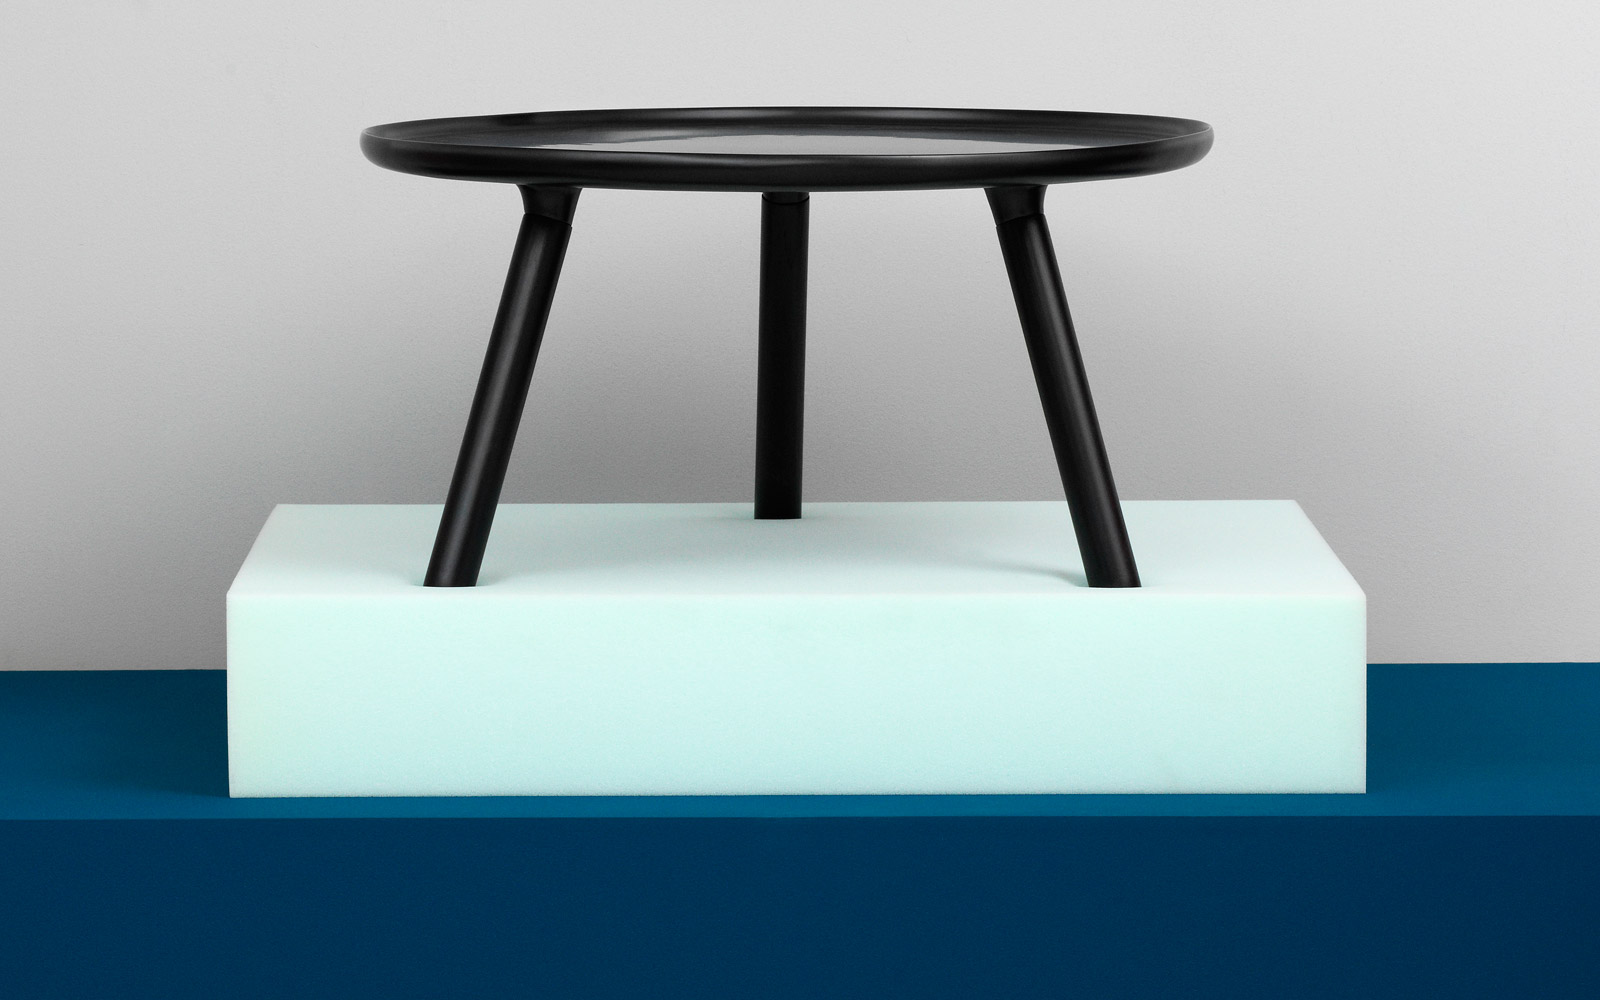 Tablo Table A Minimalistic Coffee Table In Black With Legs Of Ash